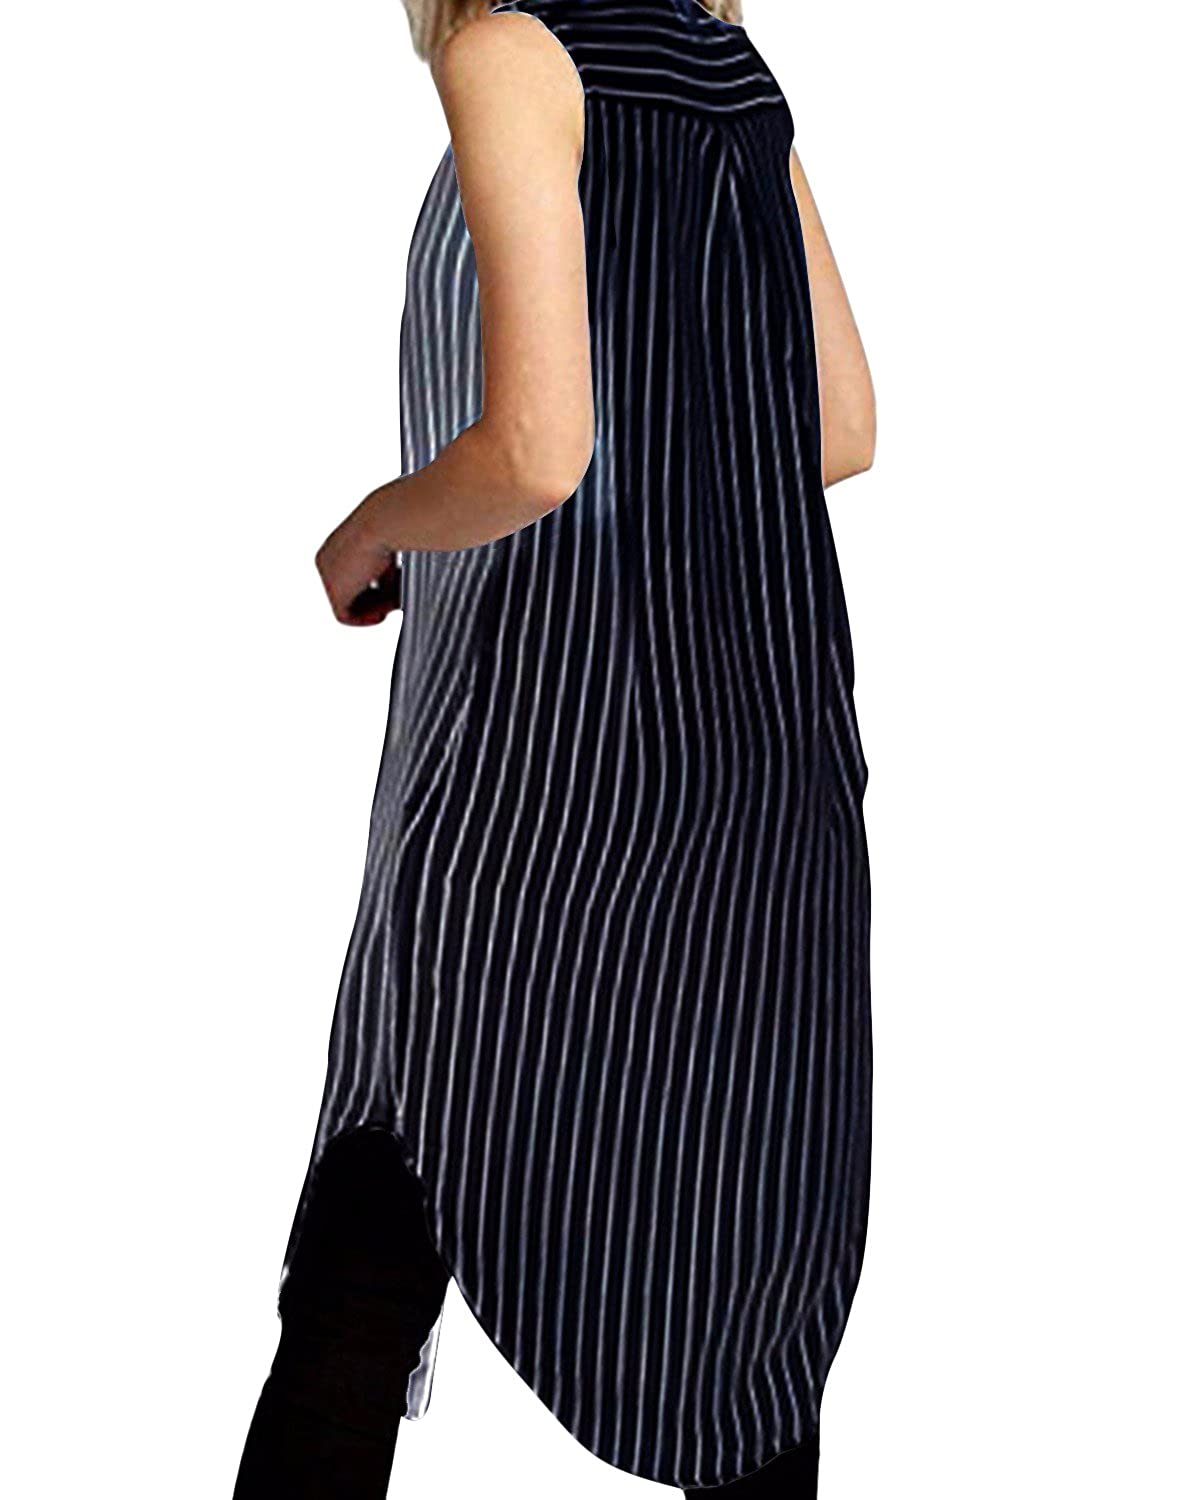 39c977020030 StyleDome Women Chiffon Sheer Vertical Stripe Lapel Sleeveless Button Down  Long Vest Tops Shirt Dress Blue US 10: Amazon.in: Clothing & Accessories